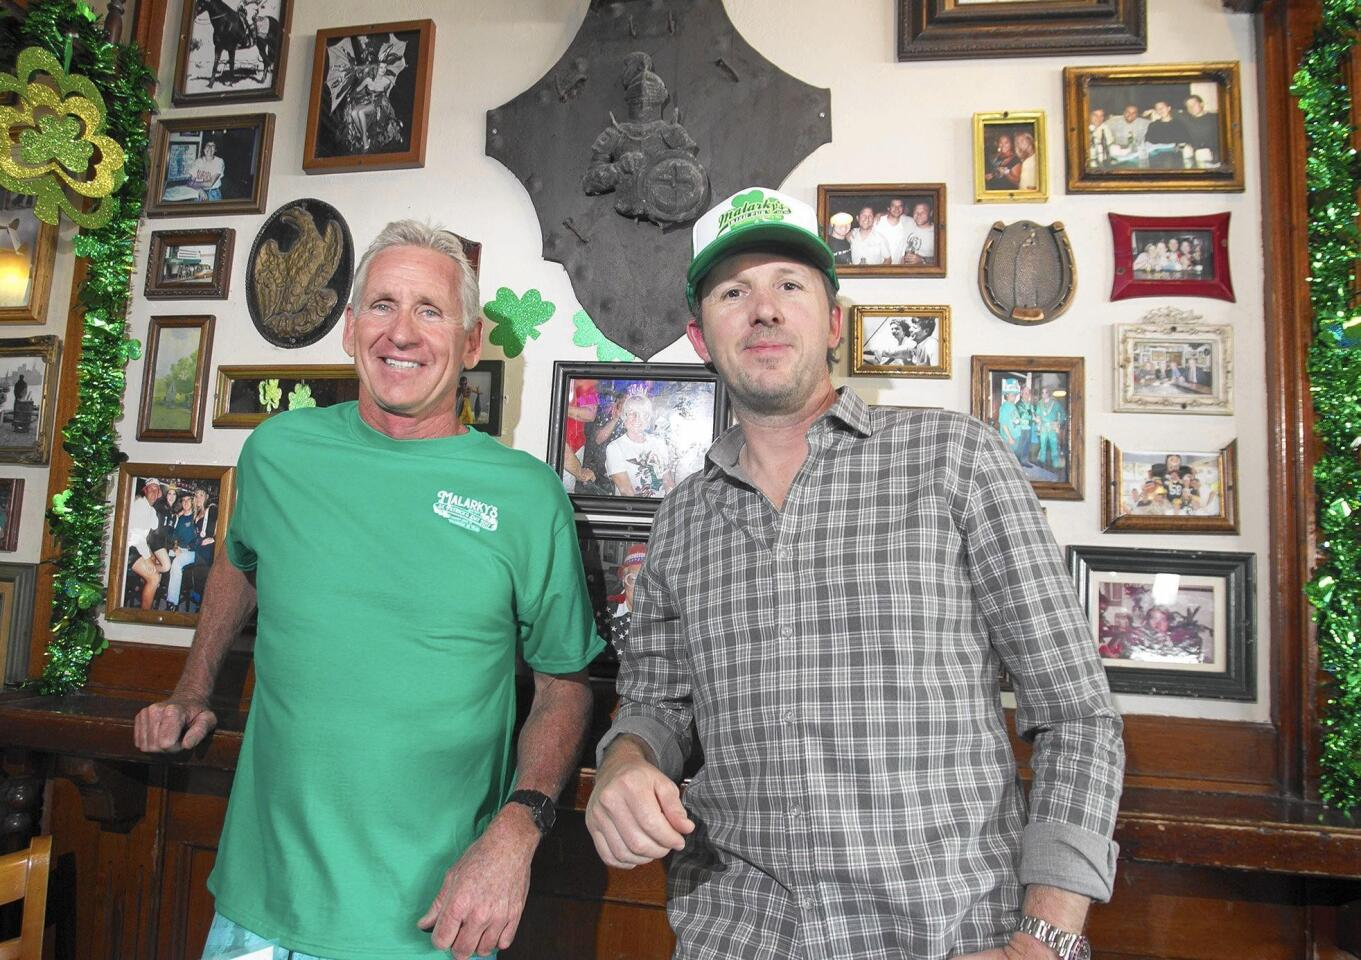 """Malarky's Irish Pub co-owners Brent Ranek, left, and Mario Marovic stand in front of the """"wall of fame"""" picture wall at the Newport Beach restaurant and bar, which is celebrating its 40th anniversary."""